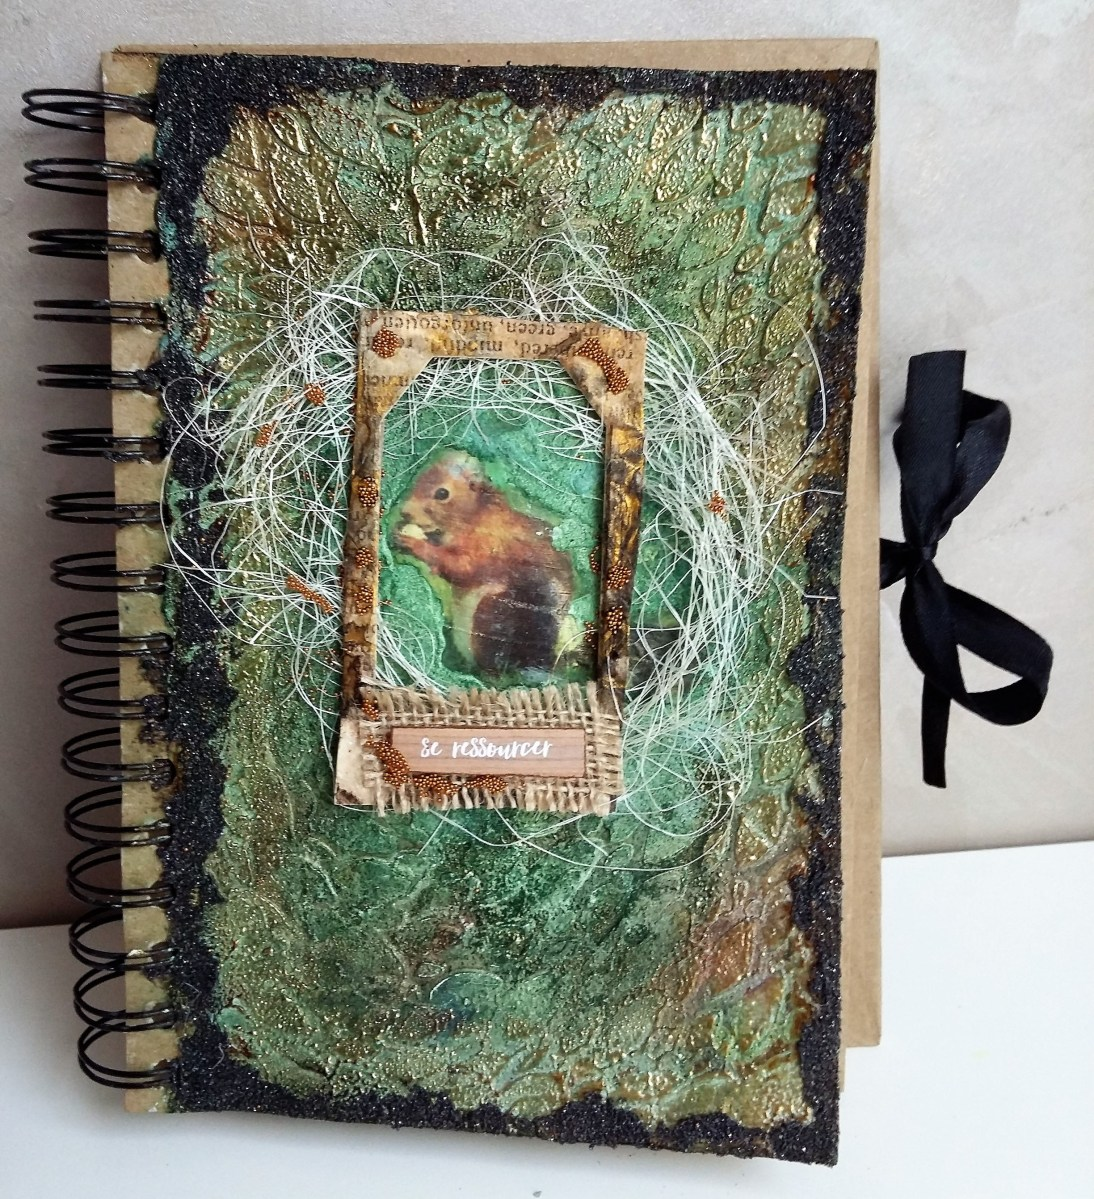 Textured Art Journal Cover with Guest Stephanie Ber